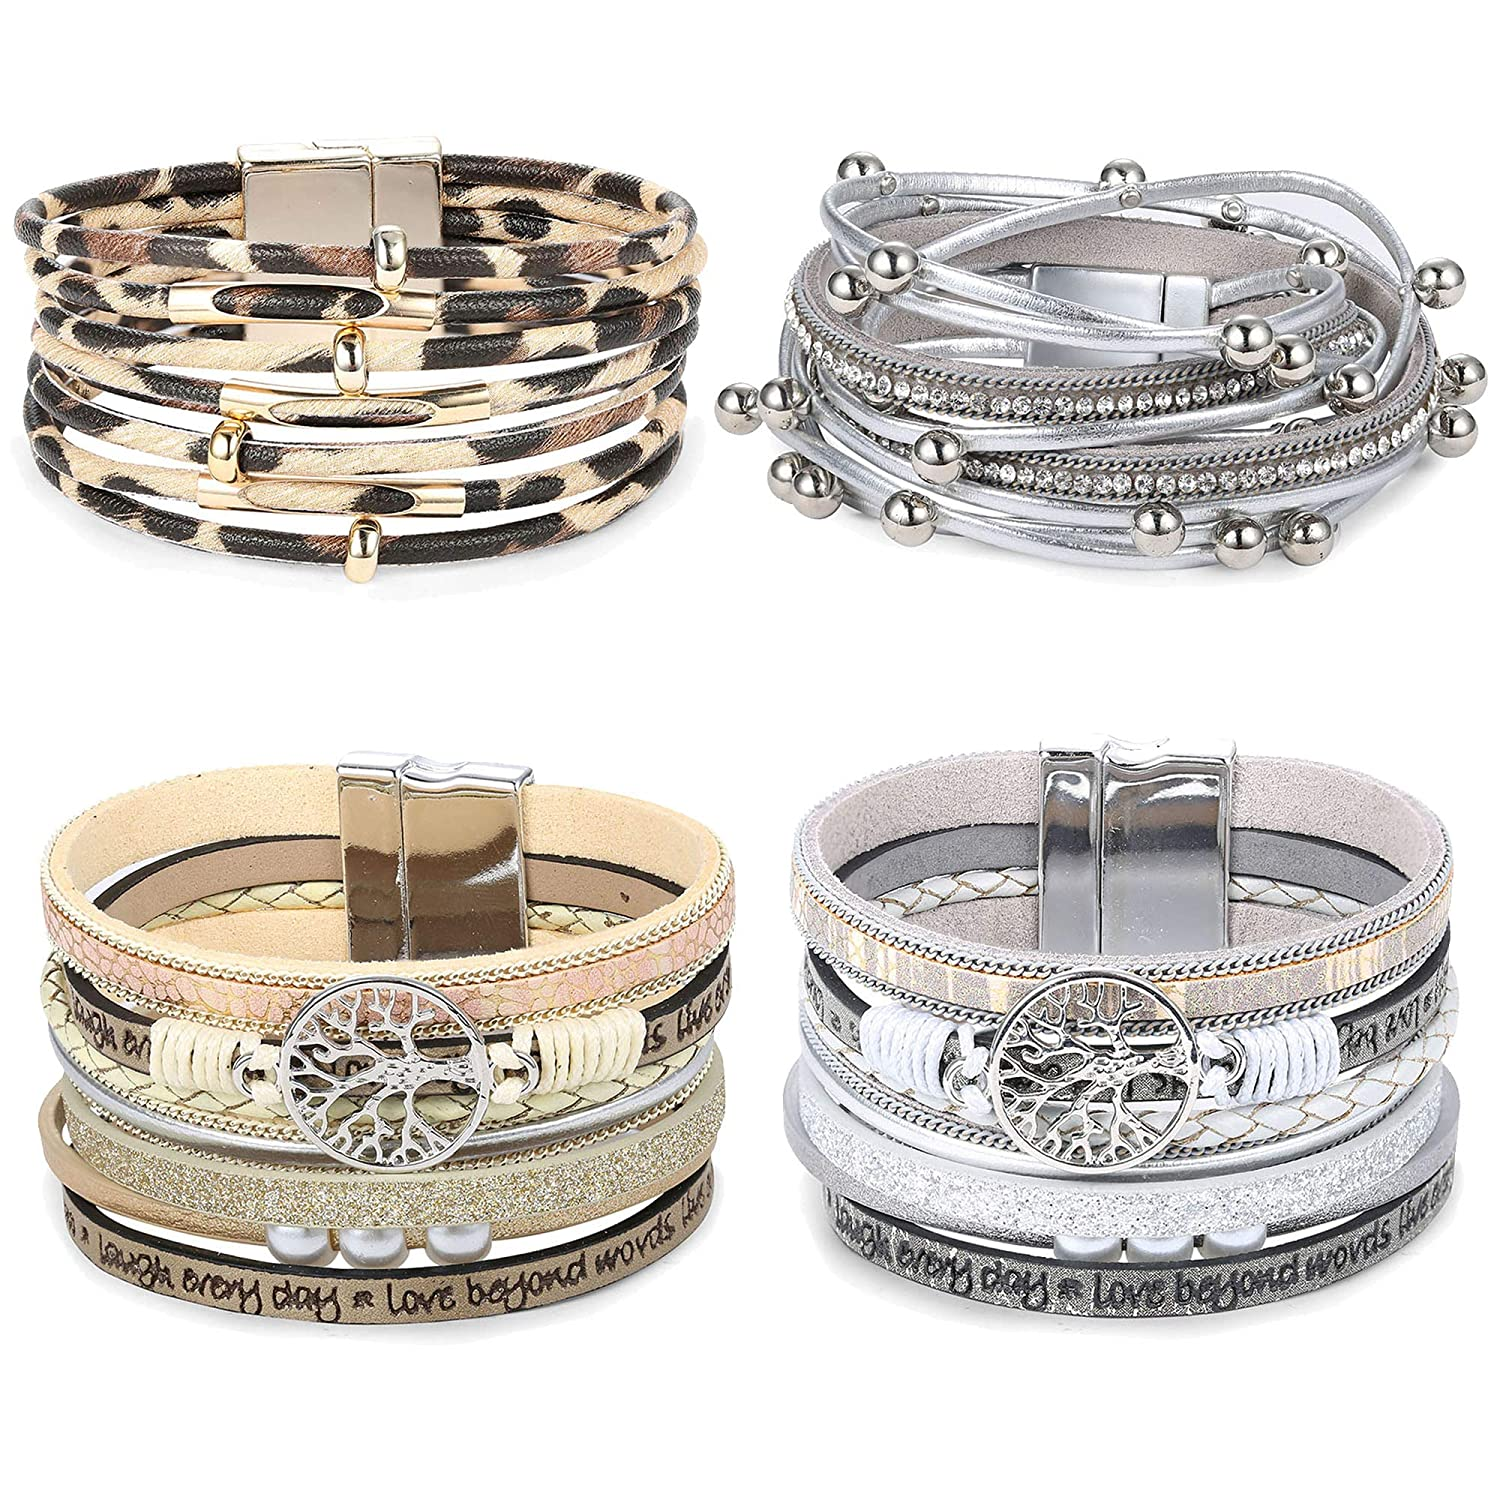 Thunaraz 4Sets Multi-Layer Leather Wrap Bracelet Stackable Handmade Wristband Braided Rope Cuff Bangle with Magnetic Buckle Jewelry